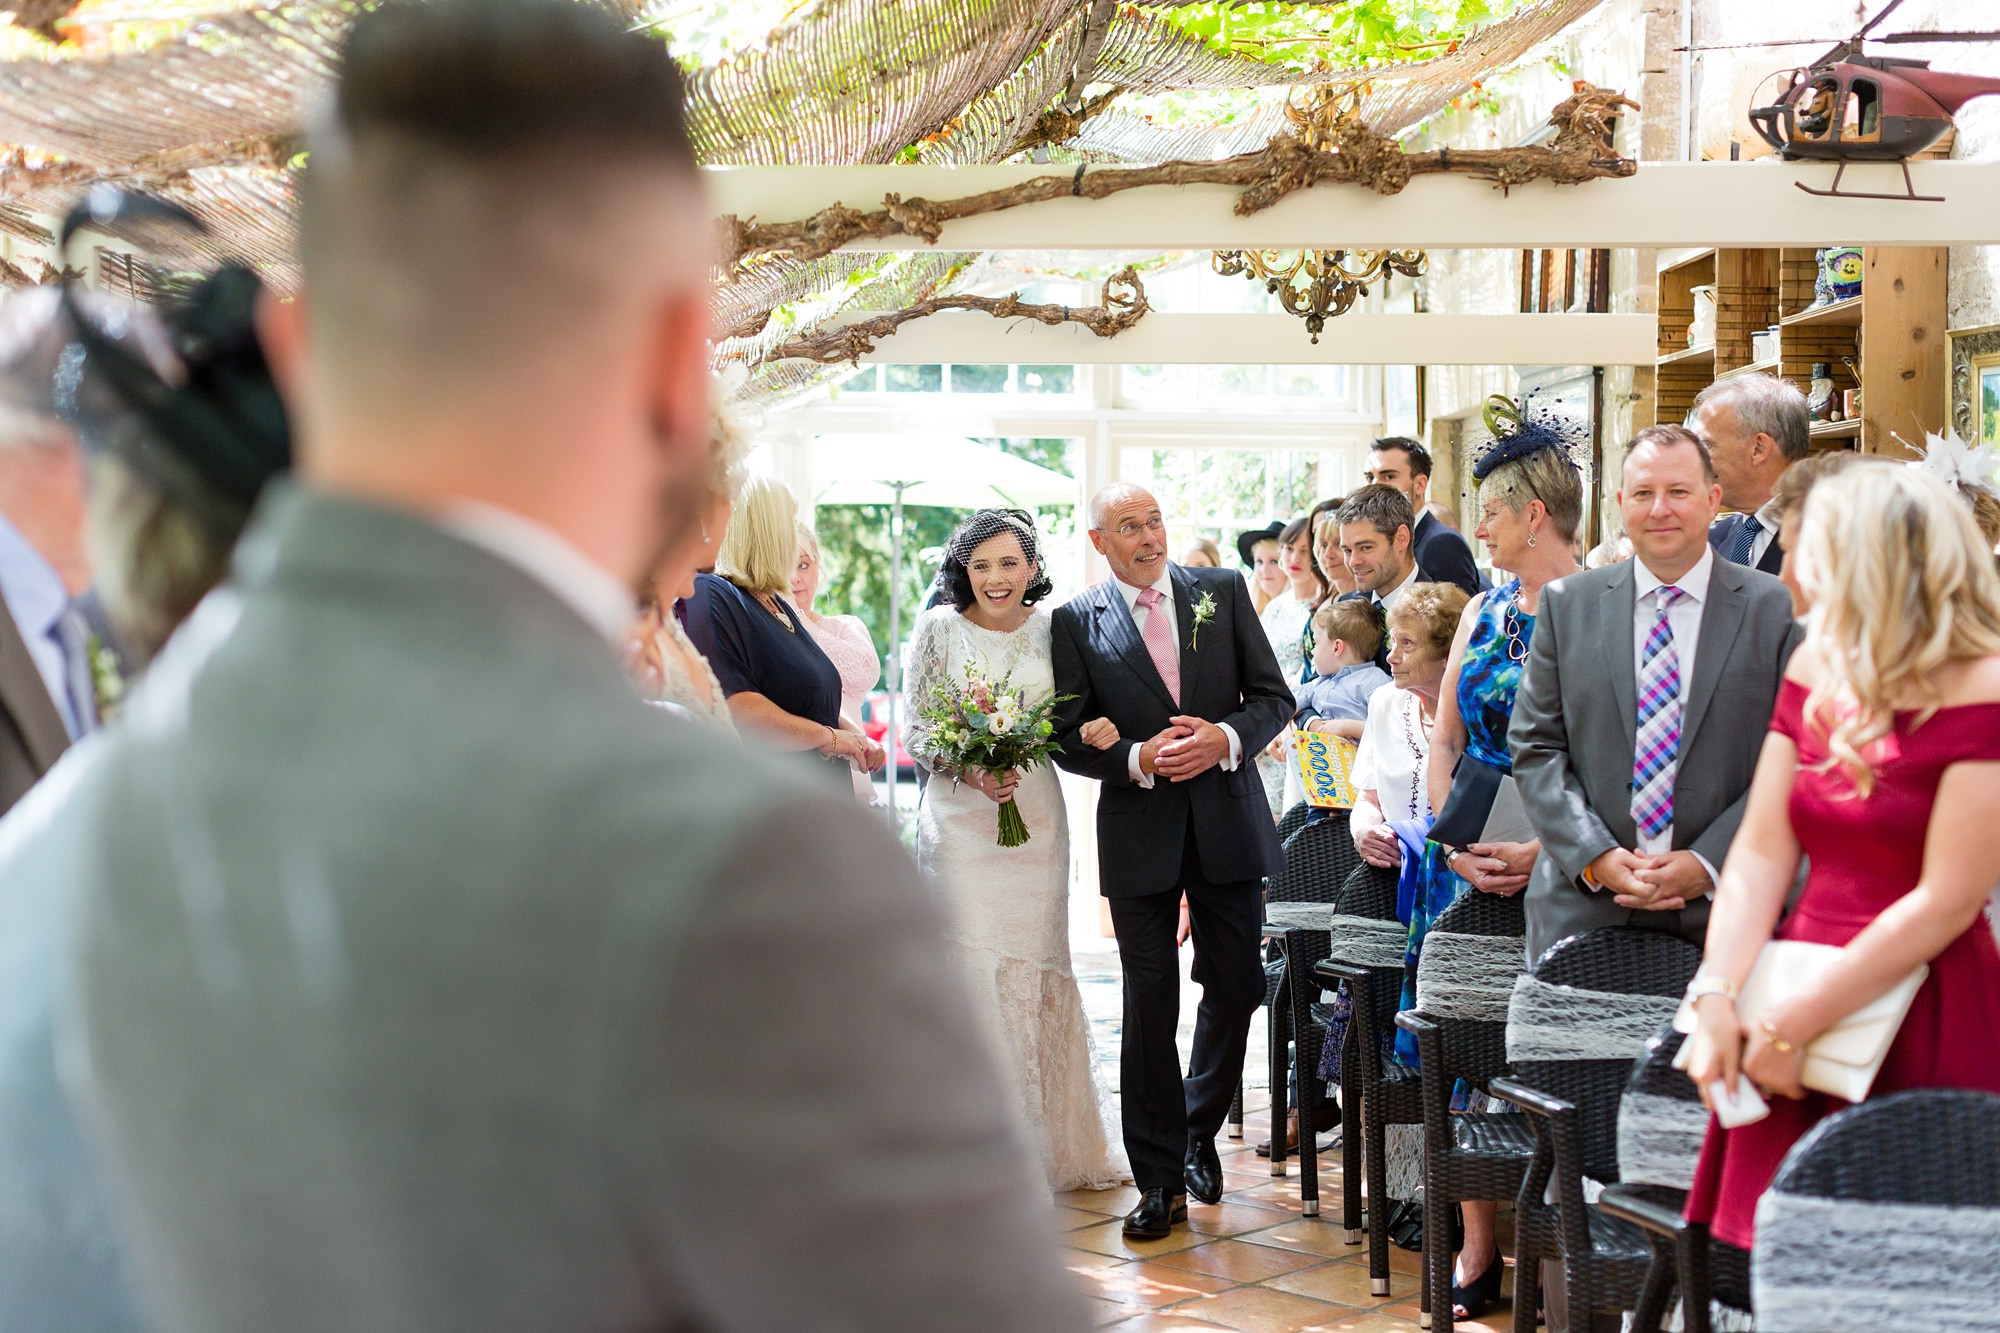 Yorkshire Wedding Photography at Crab and Lobster walking up the aisle